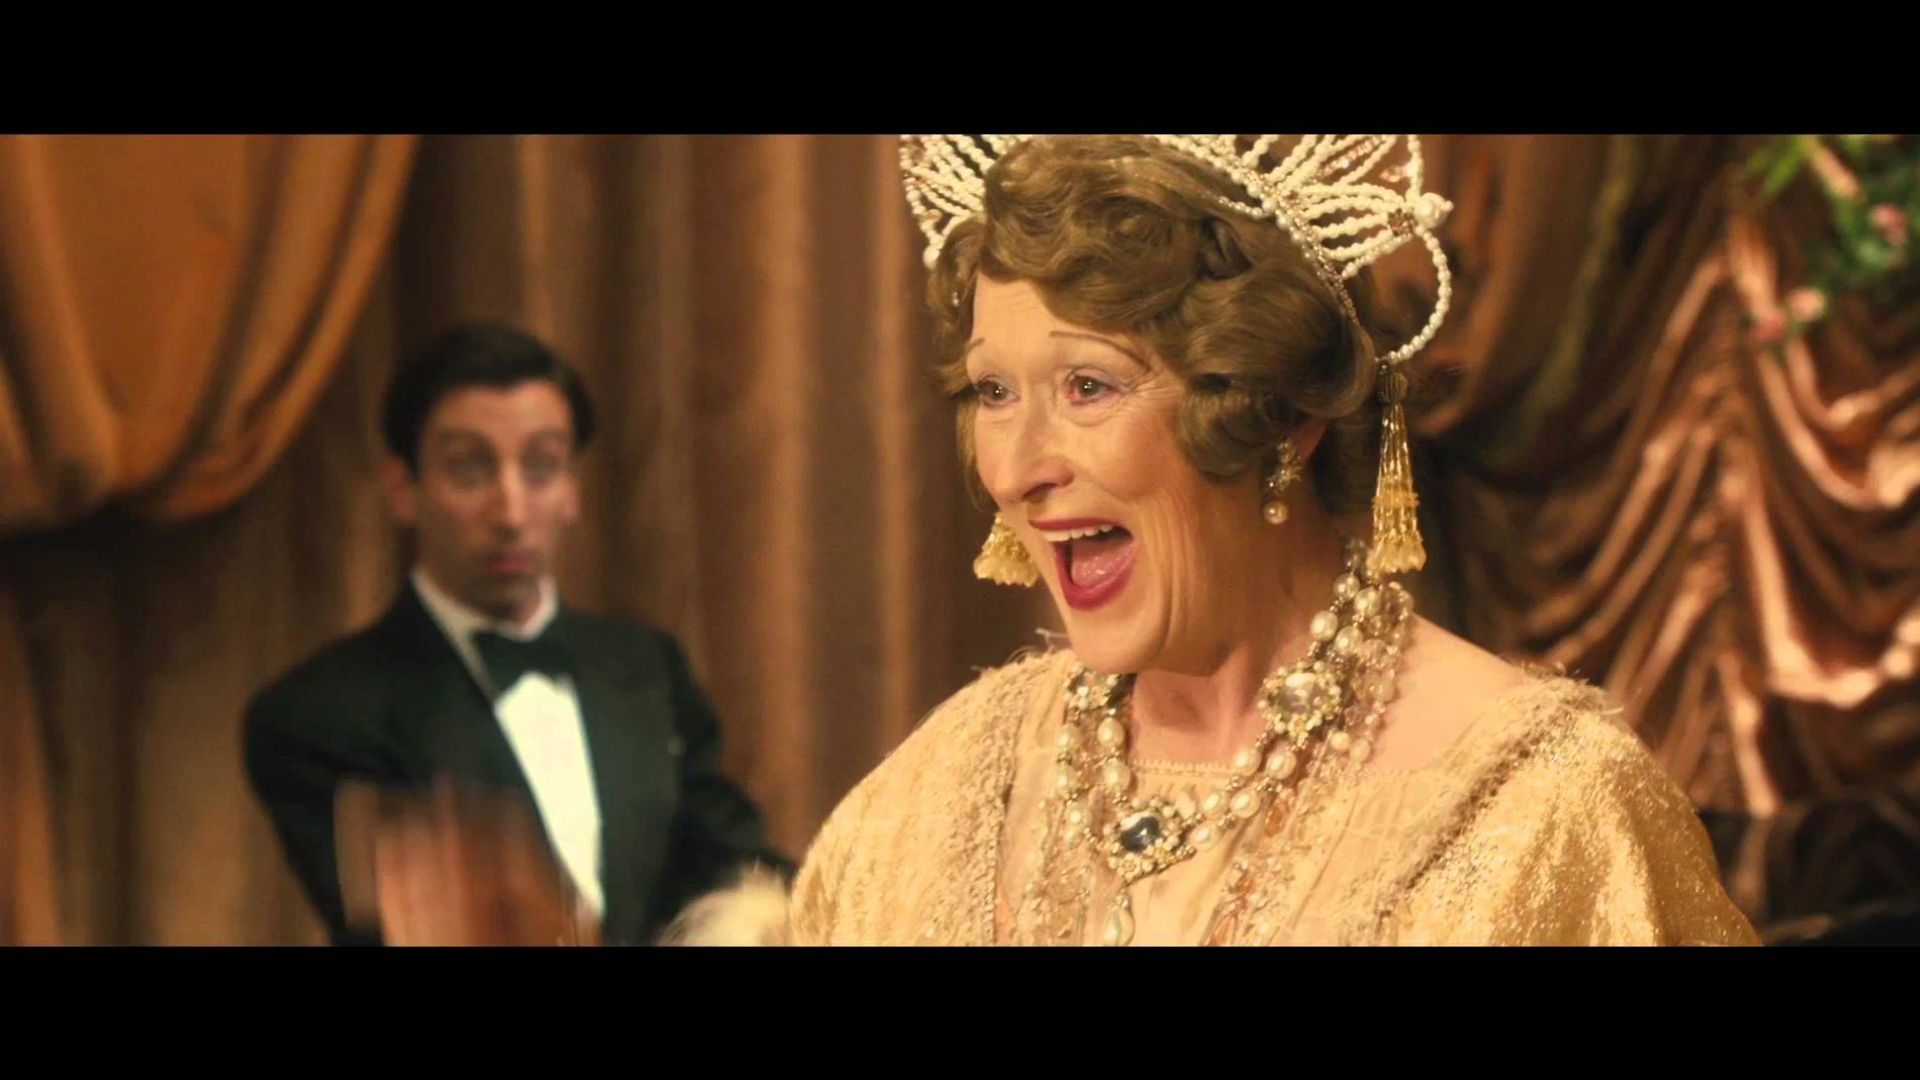 You Have To Hear It To Beleive It As Meryl Streep Stars in N